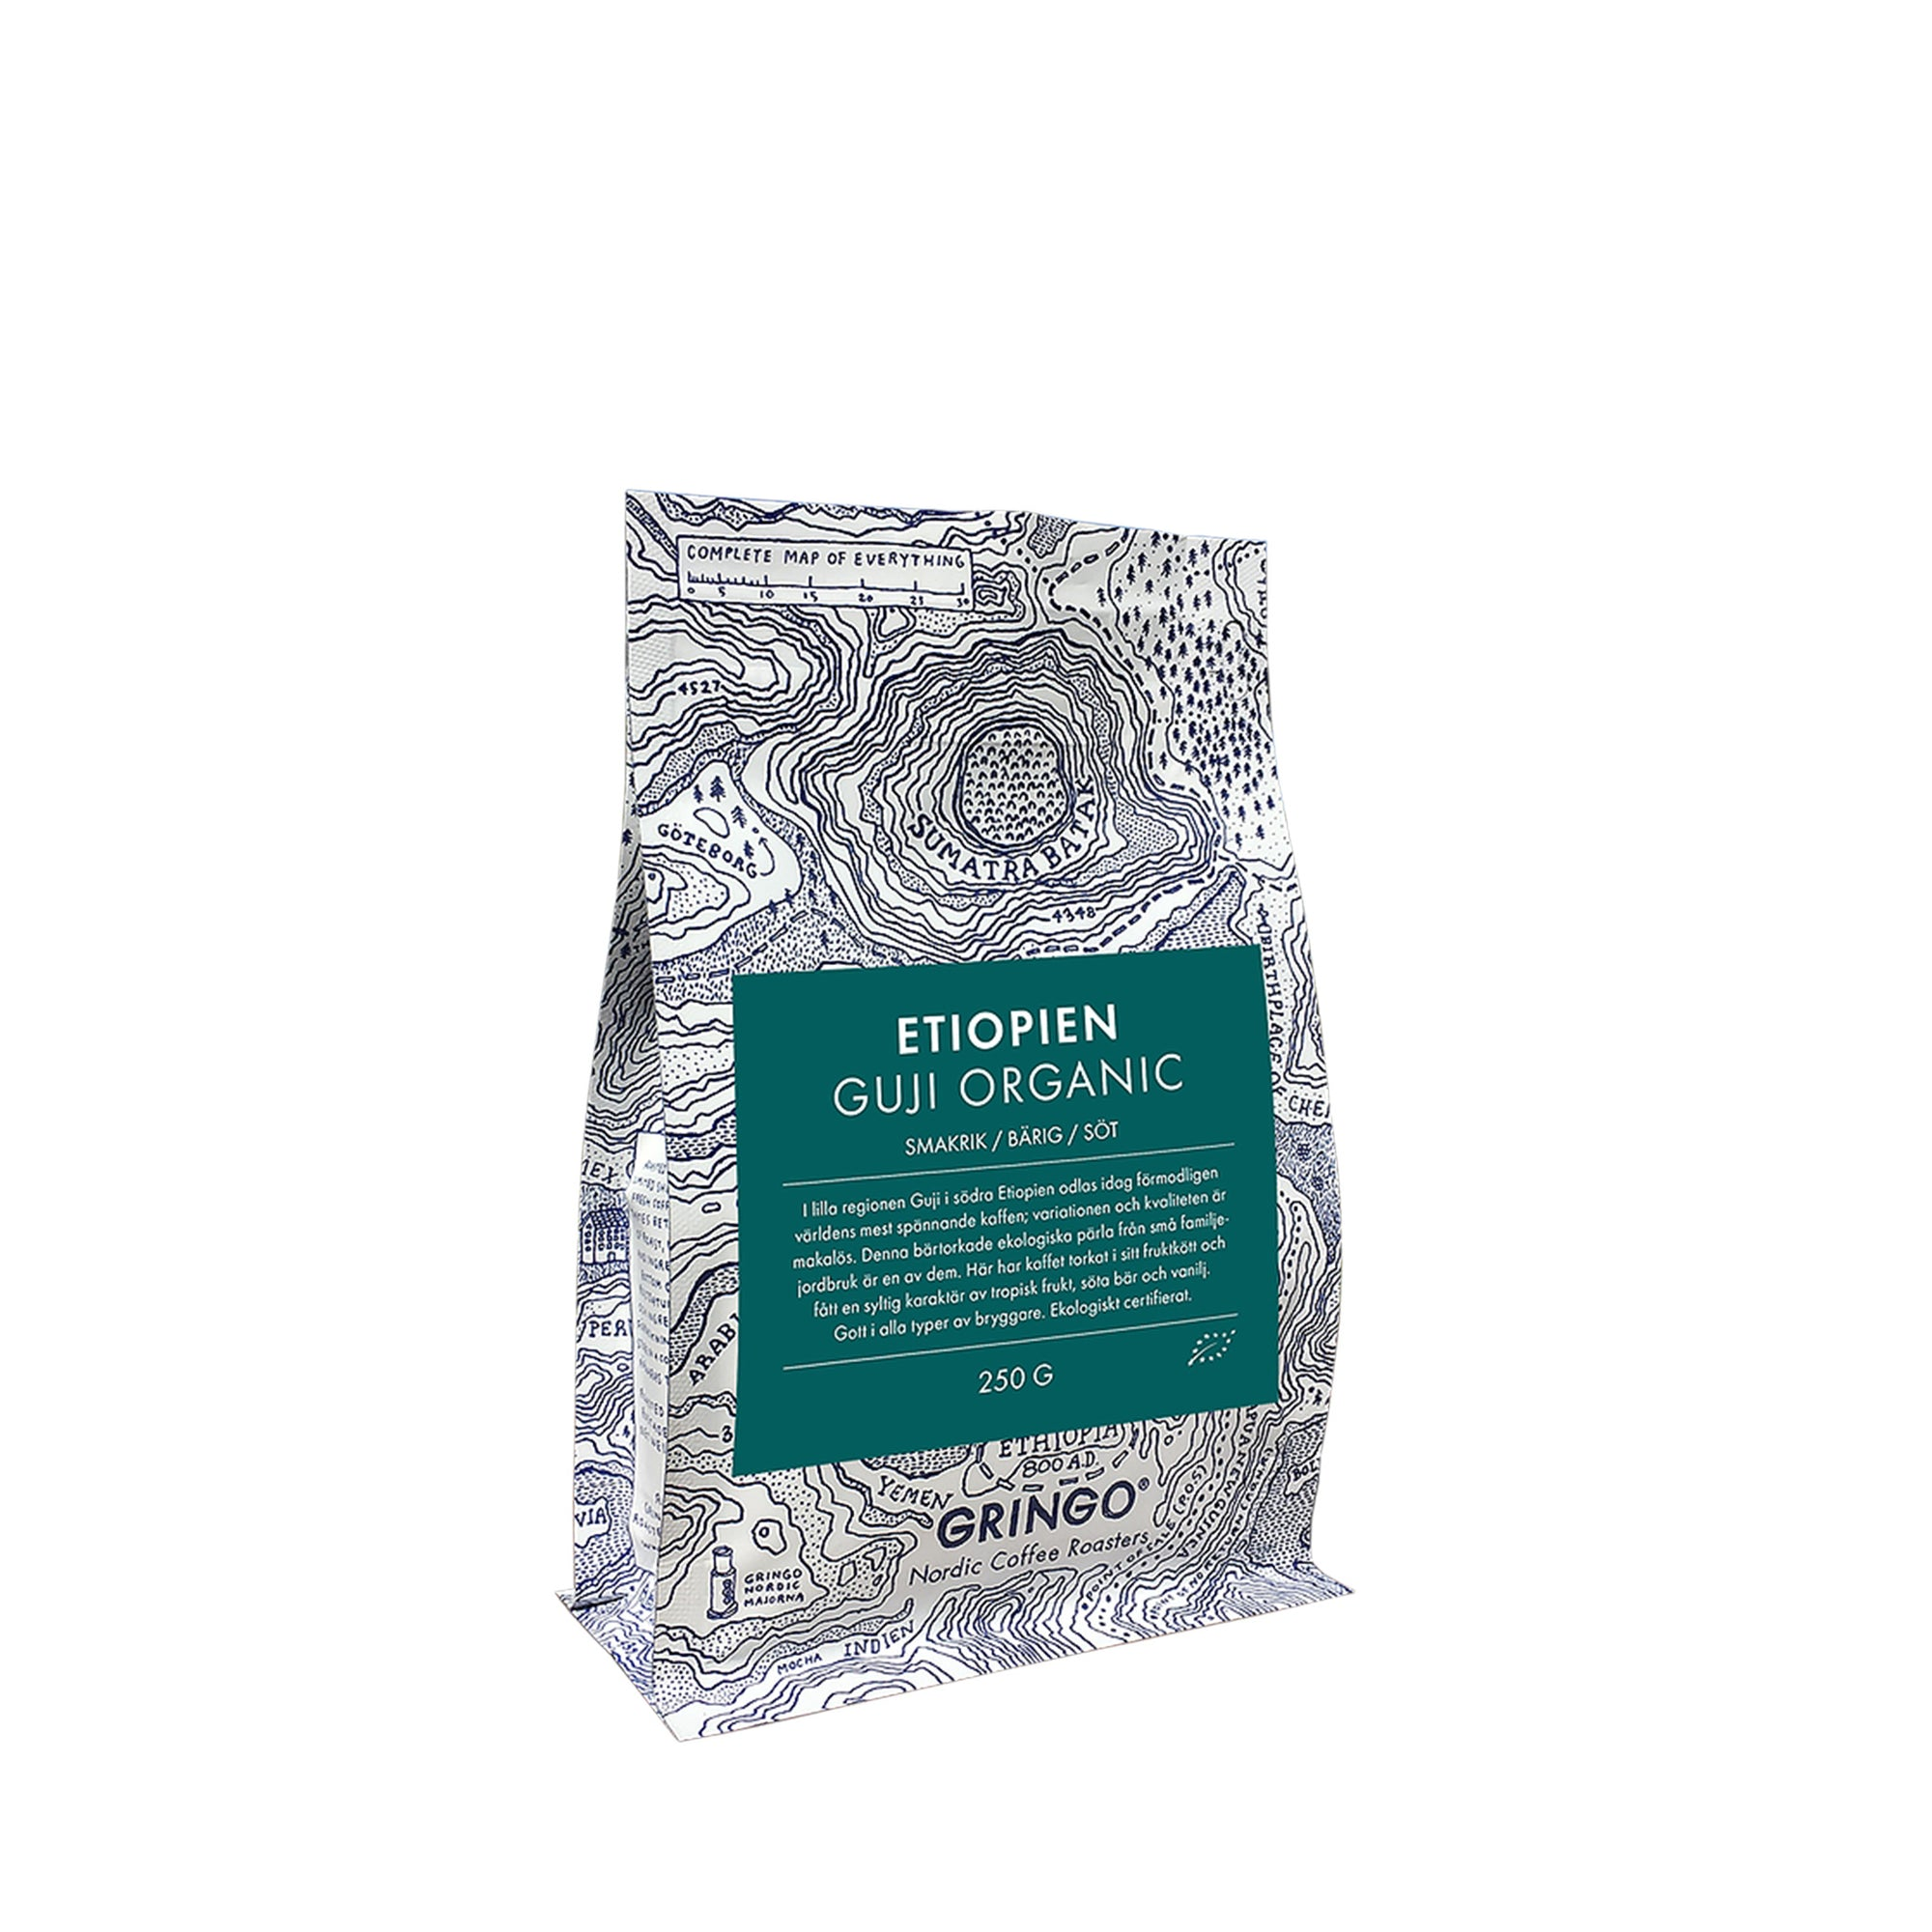 Whole Bean Coffee Guji Organic Etiopian - Gringo Roastery - Espresso Gear